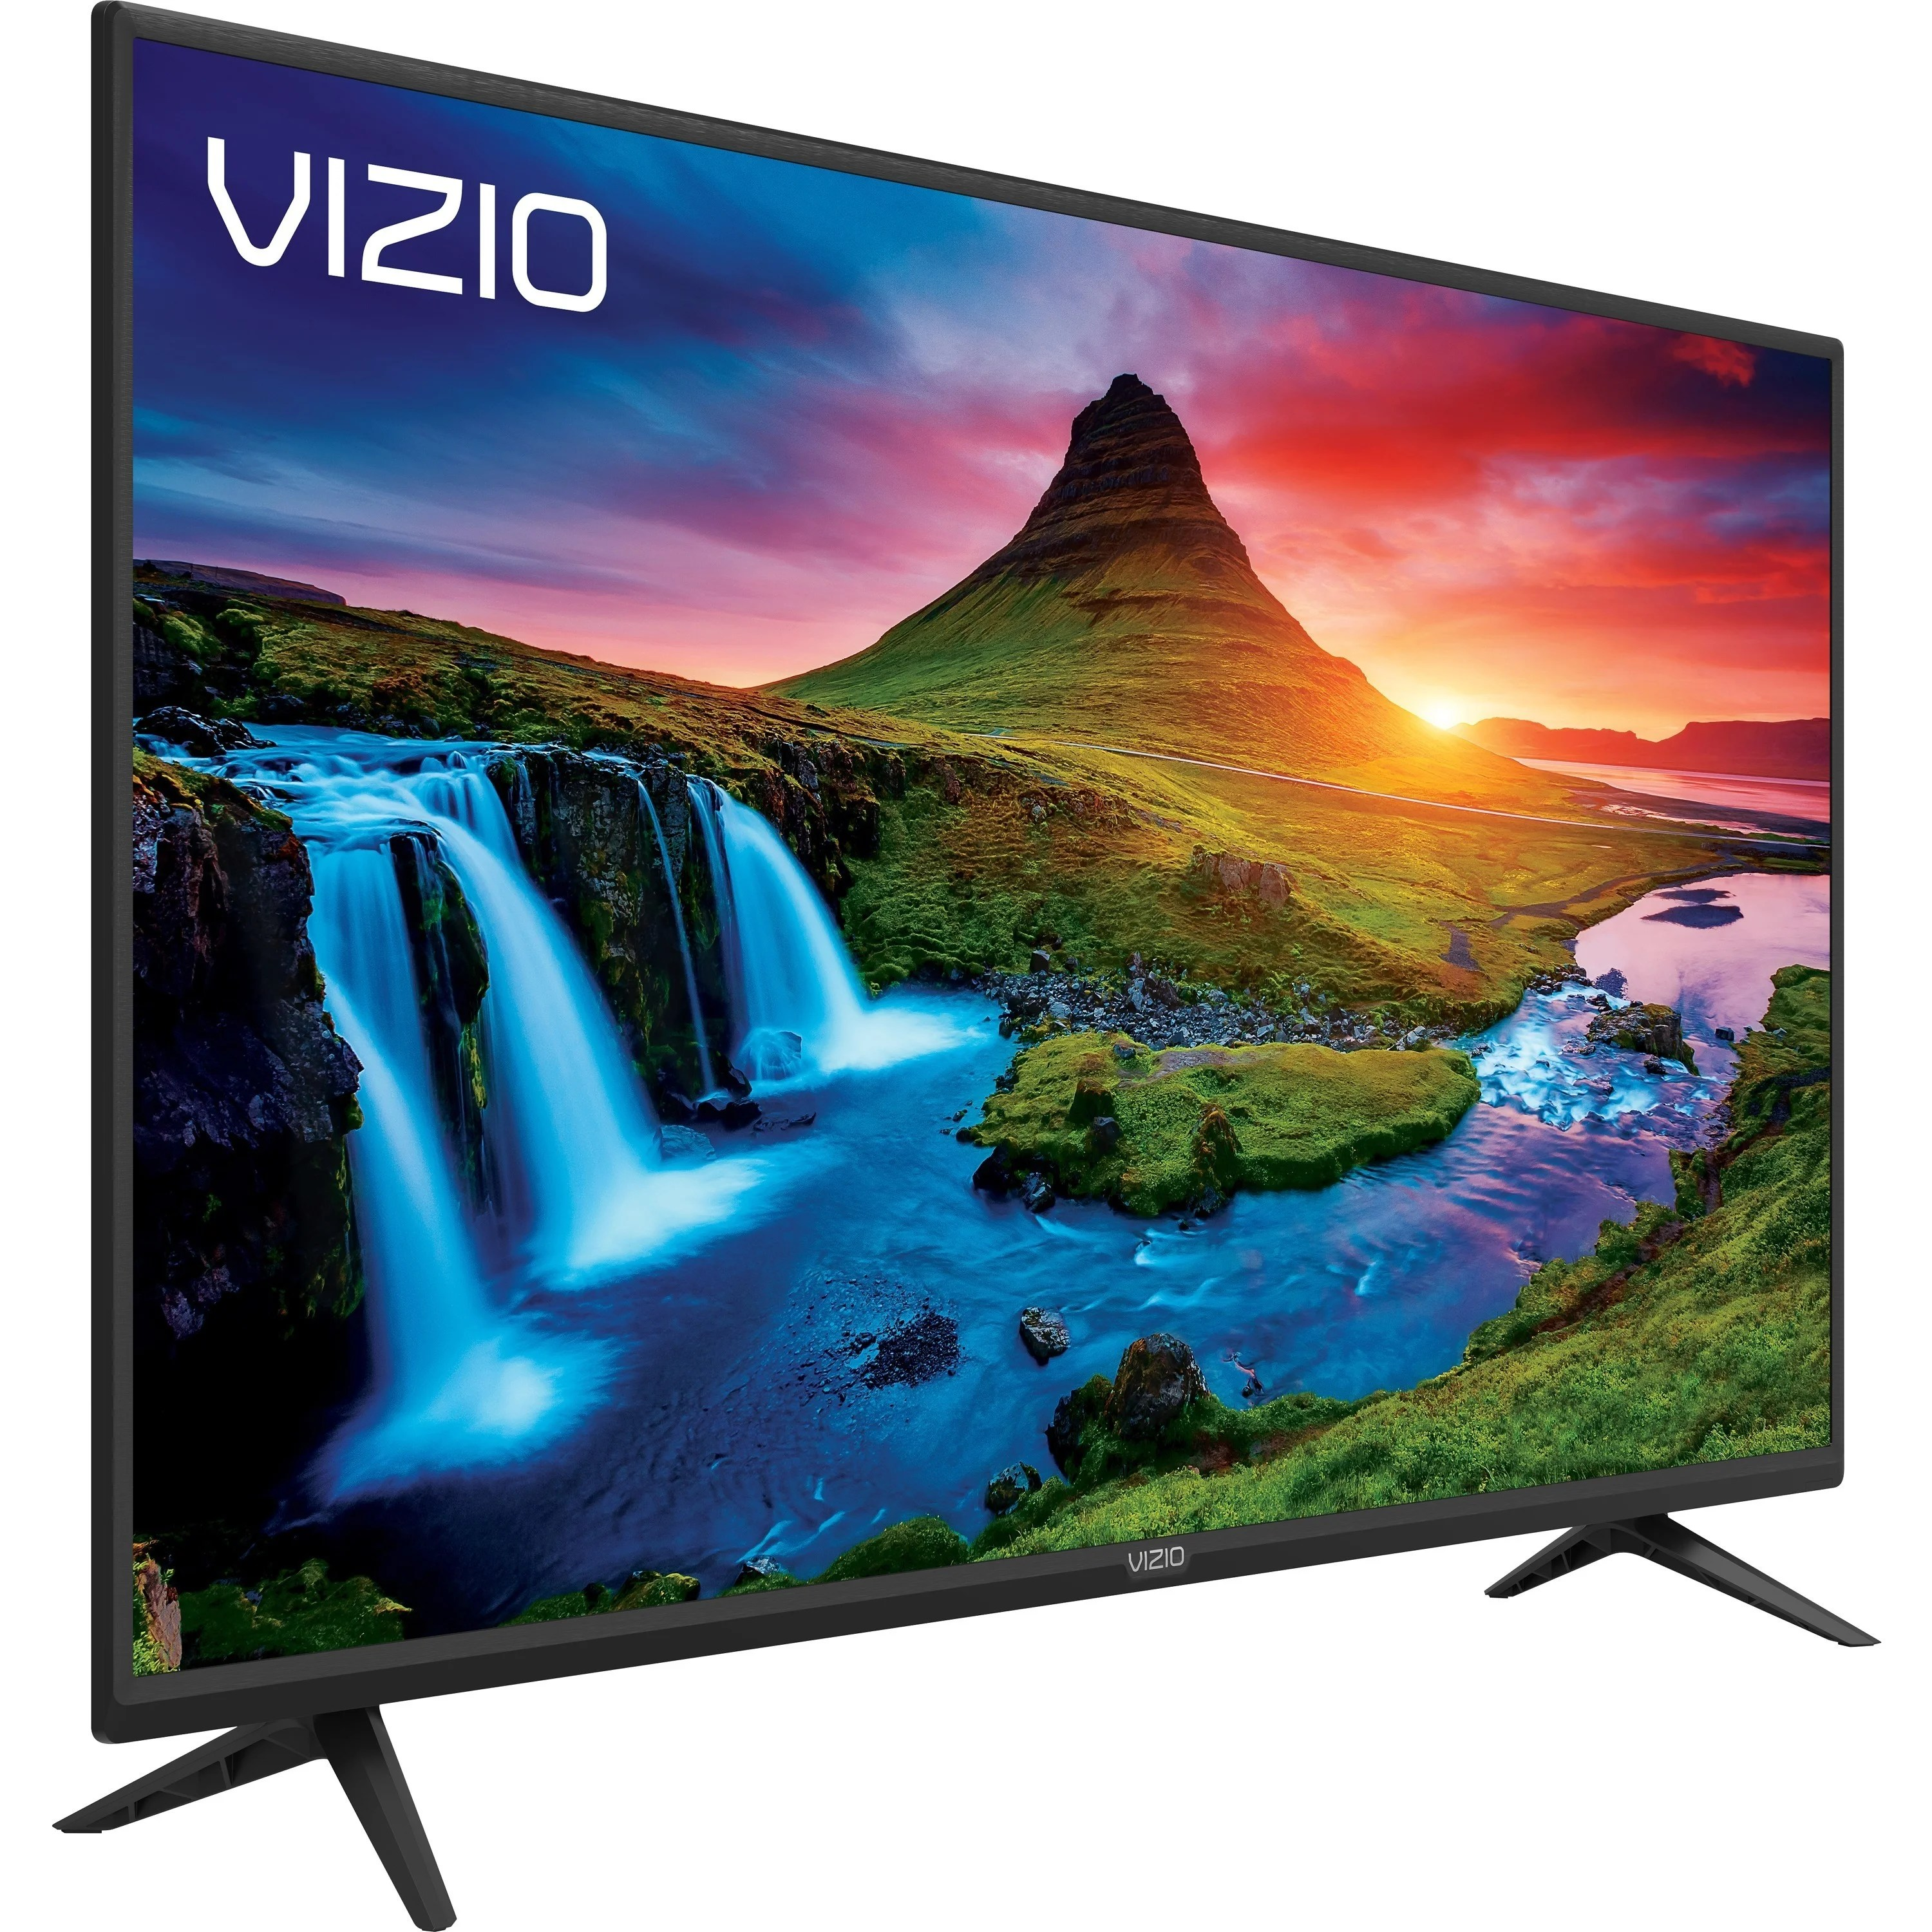 40 Inch Smart Tv Deals Details About 40 Inch Smart Tv Flat Screen Vizio 40inch 40in Visio 40 Inch Led Hd Big Freeship